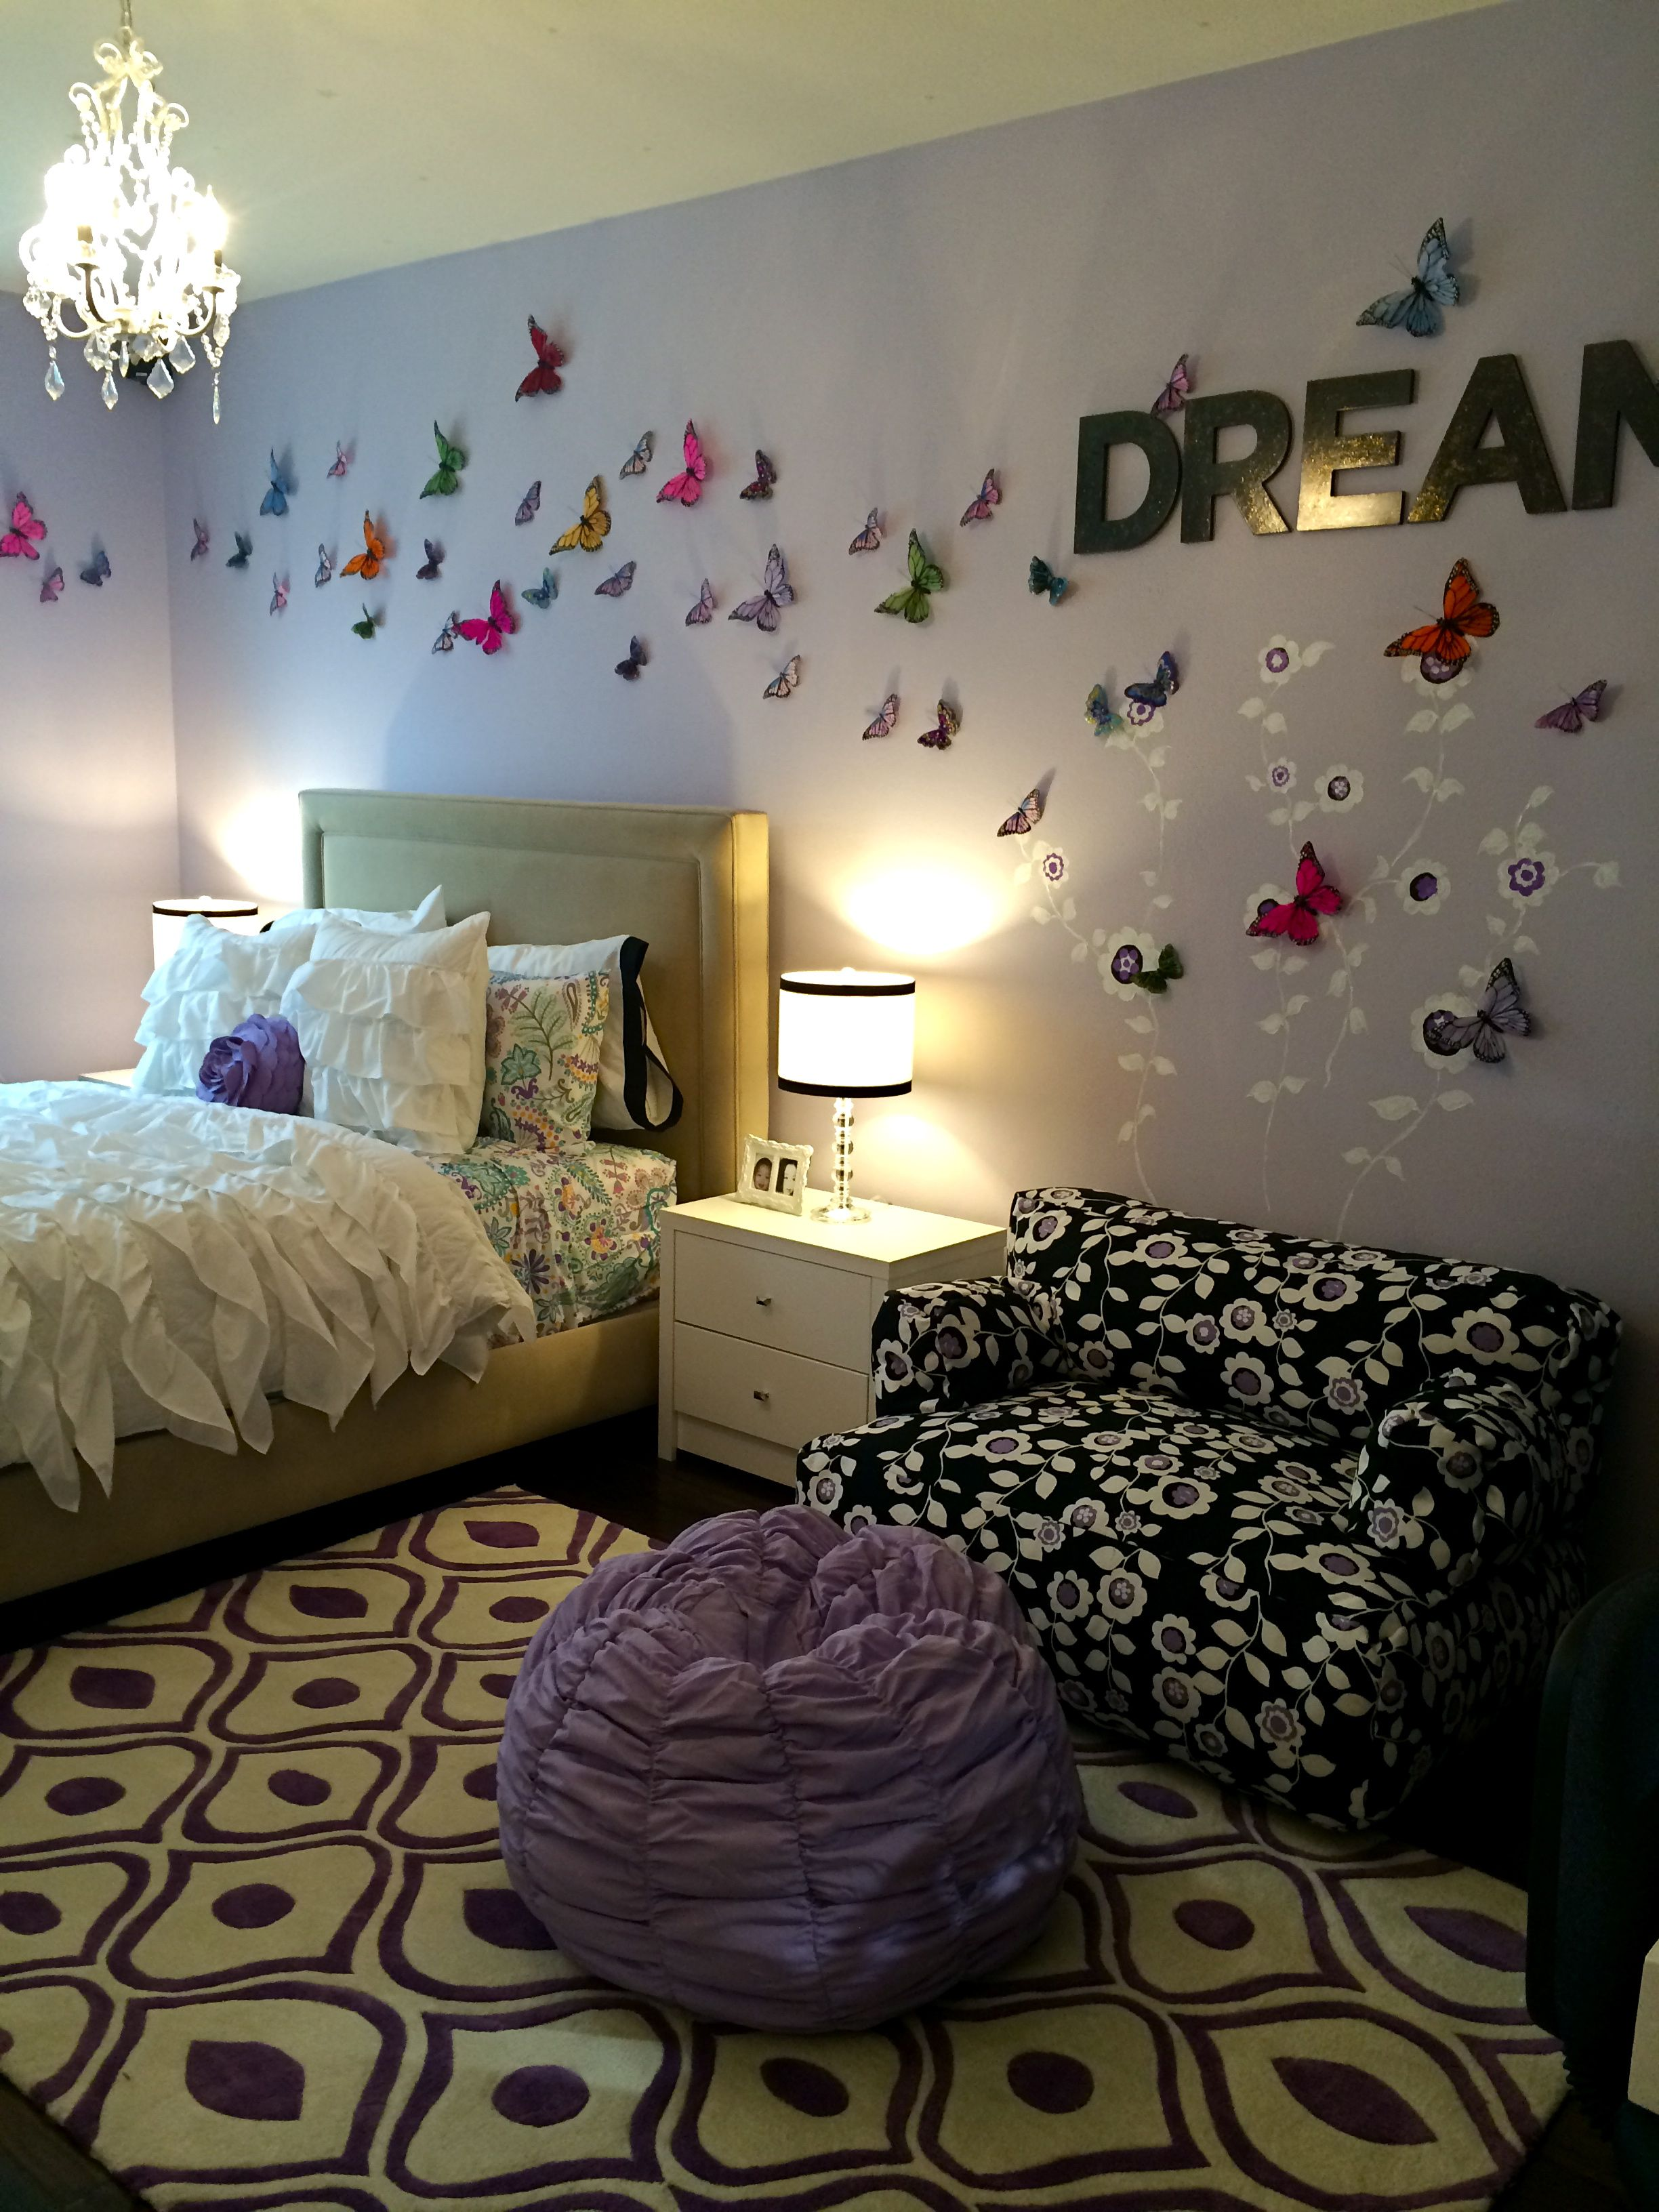 A 10 year old girls dream bedroom